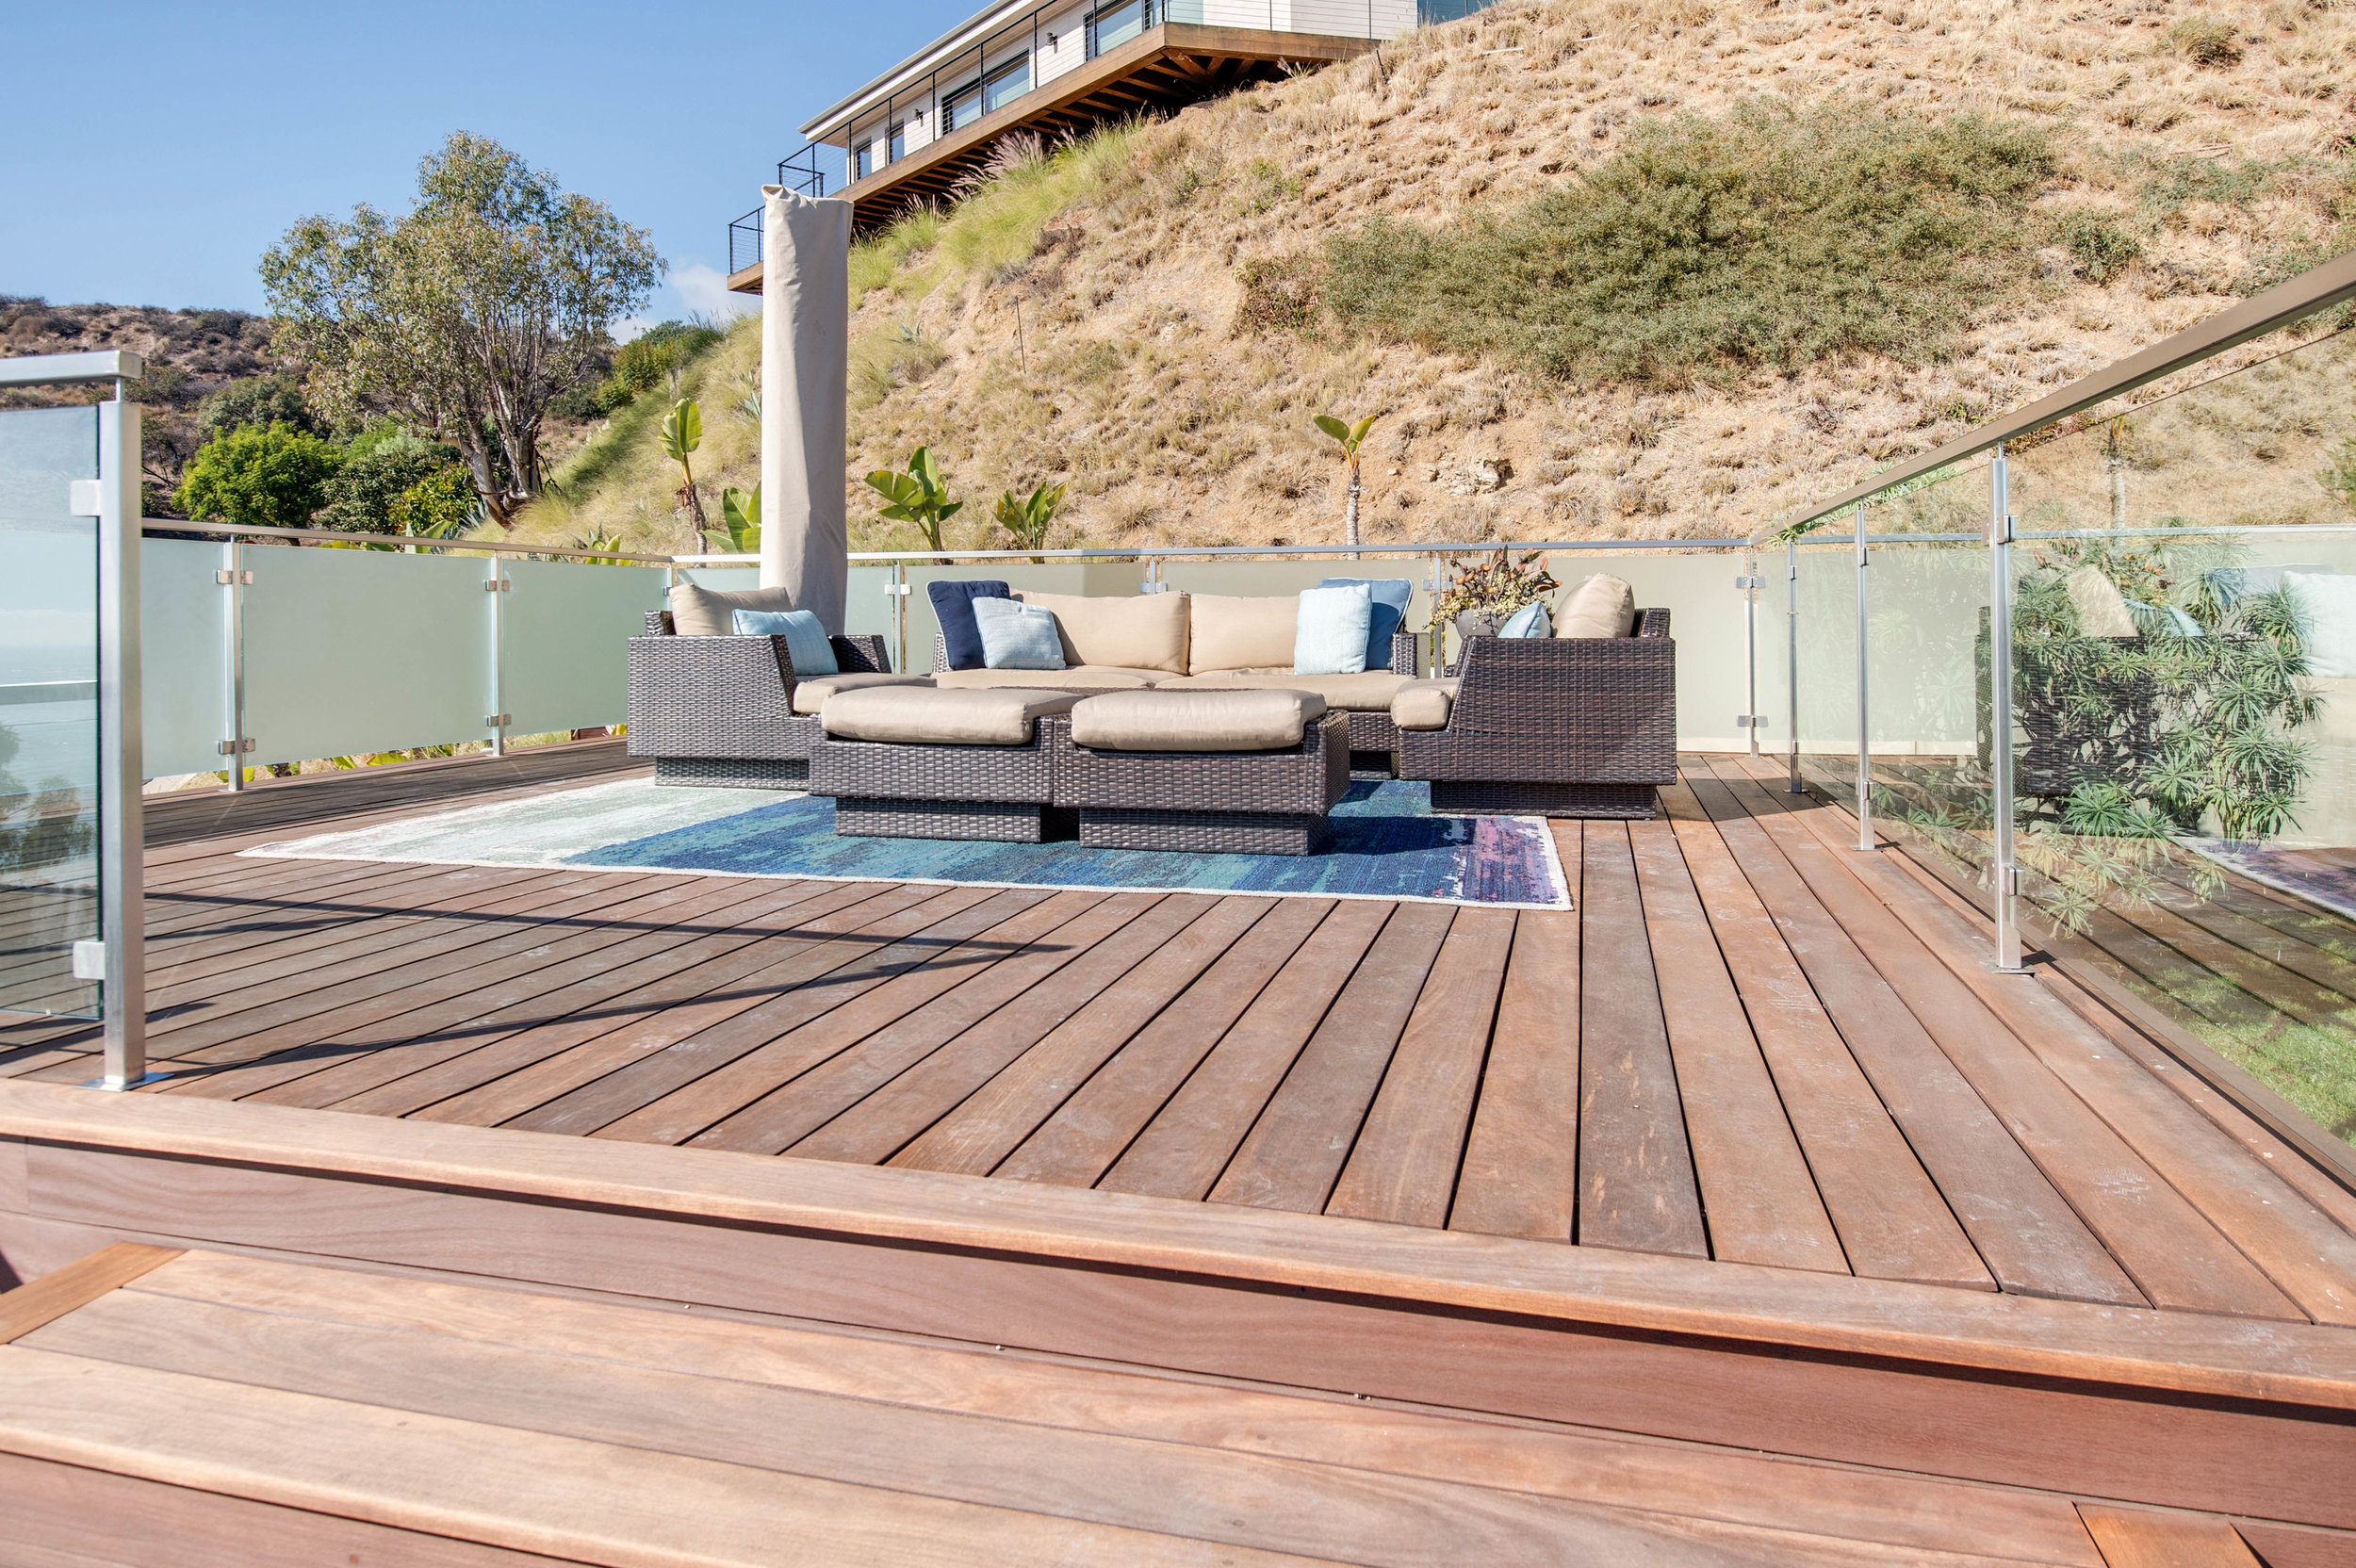 Copy of 008 Deck 20729 Eaglepass For Sale Lease The Malibu Life Team Luxury Real Estate.jpg